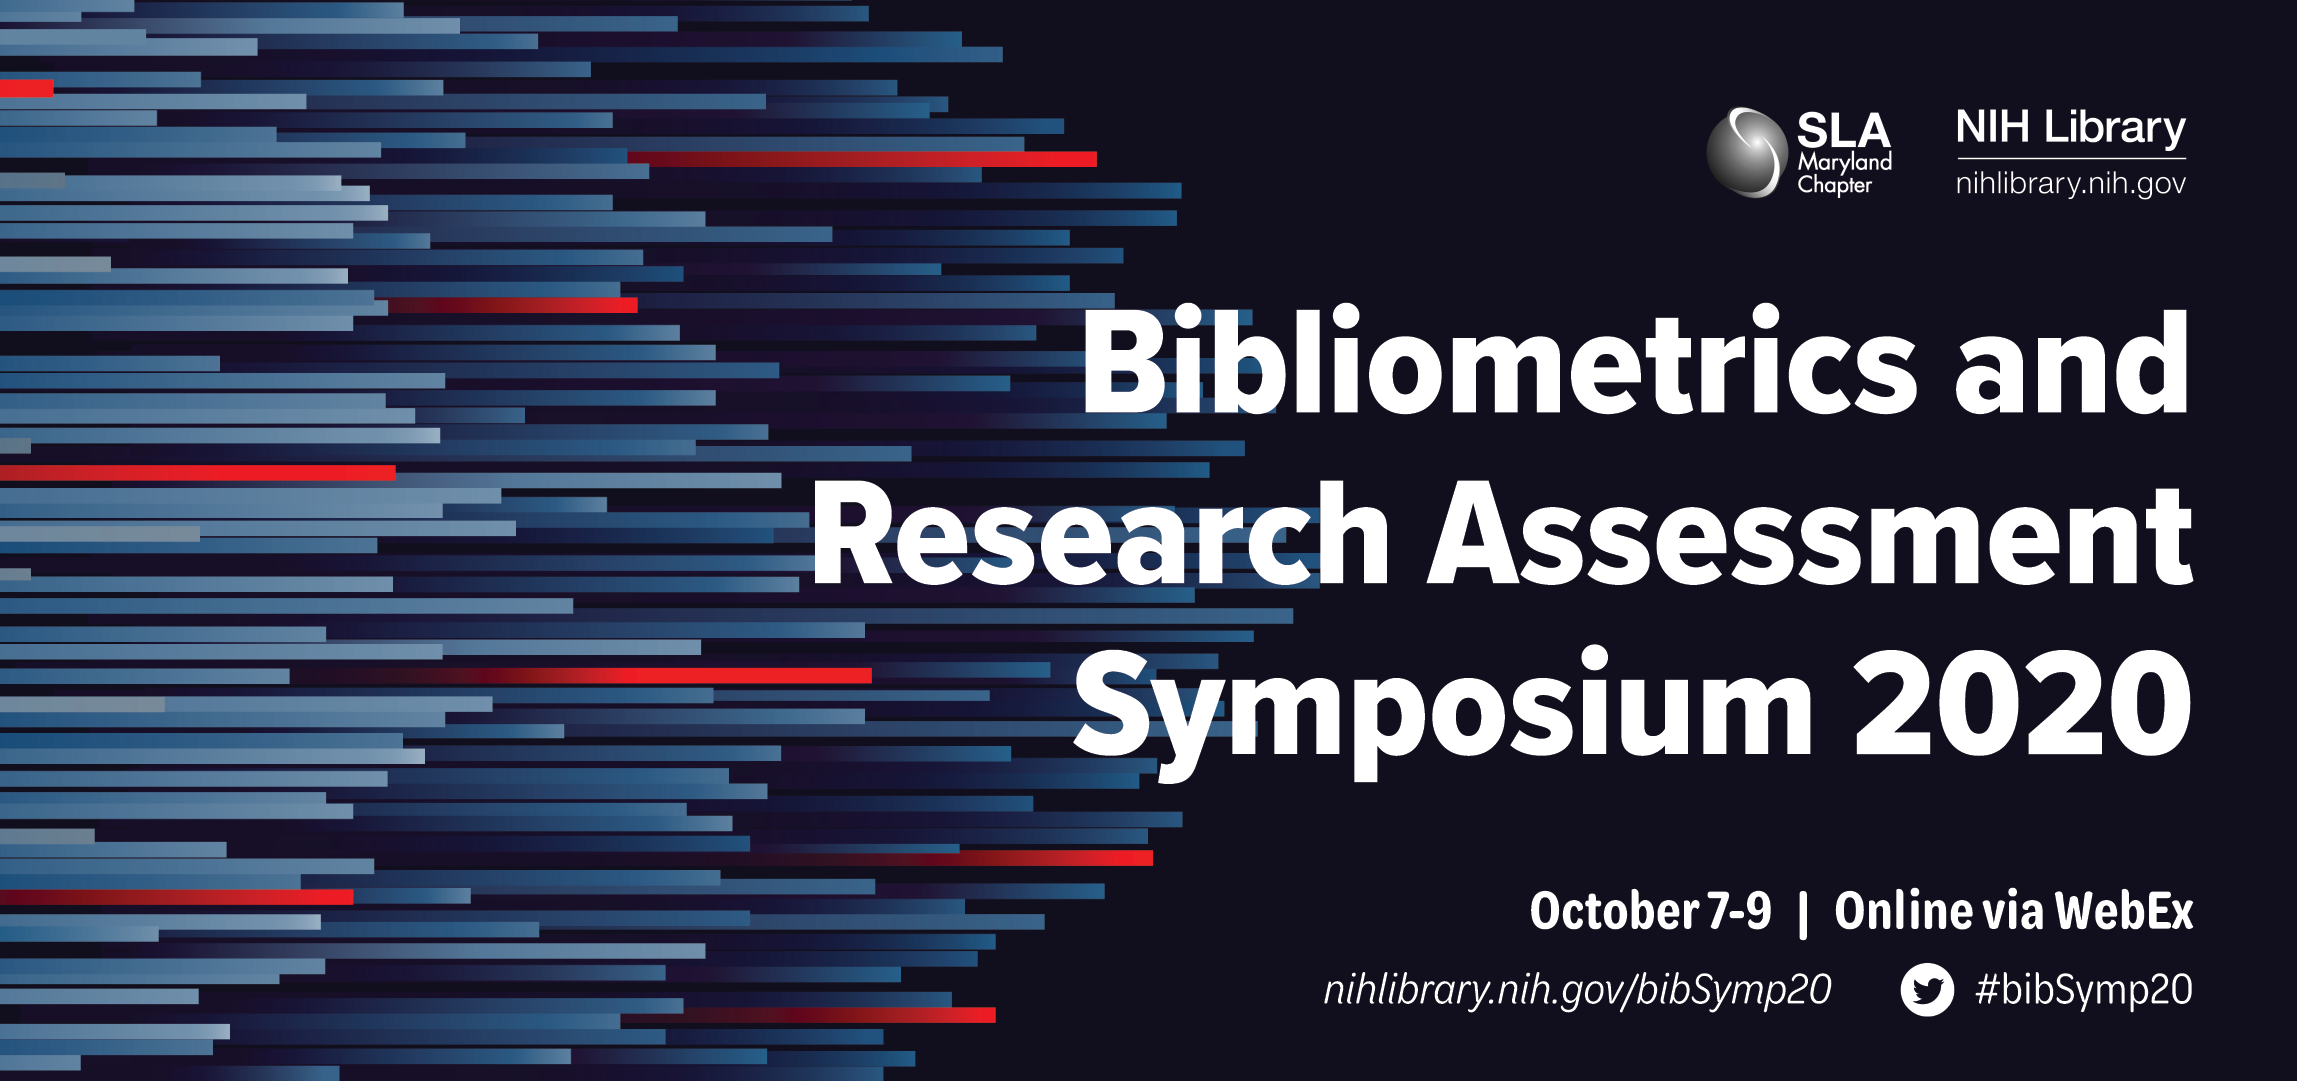 Bibliometrics & Research Assessment Symposium 2020